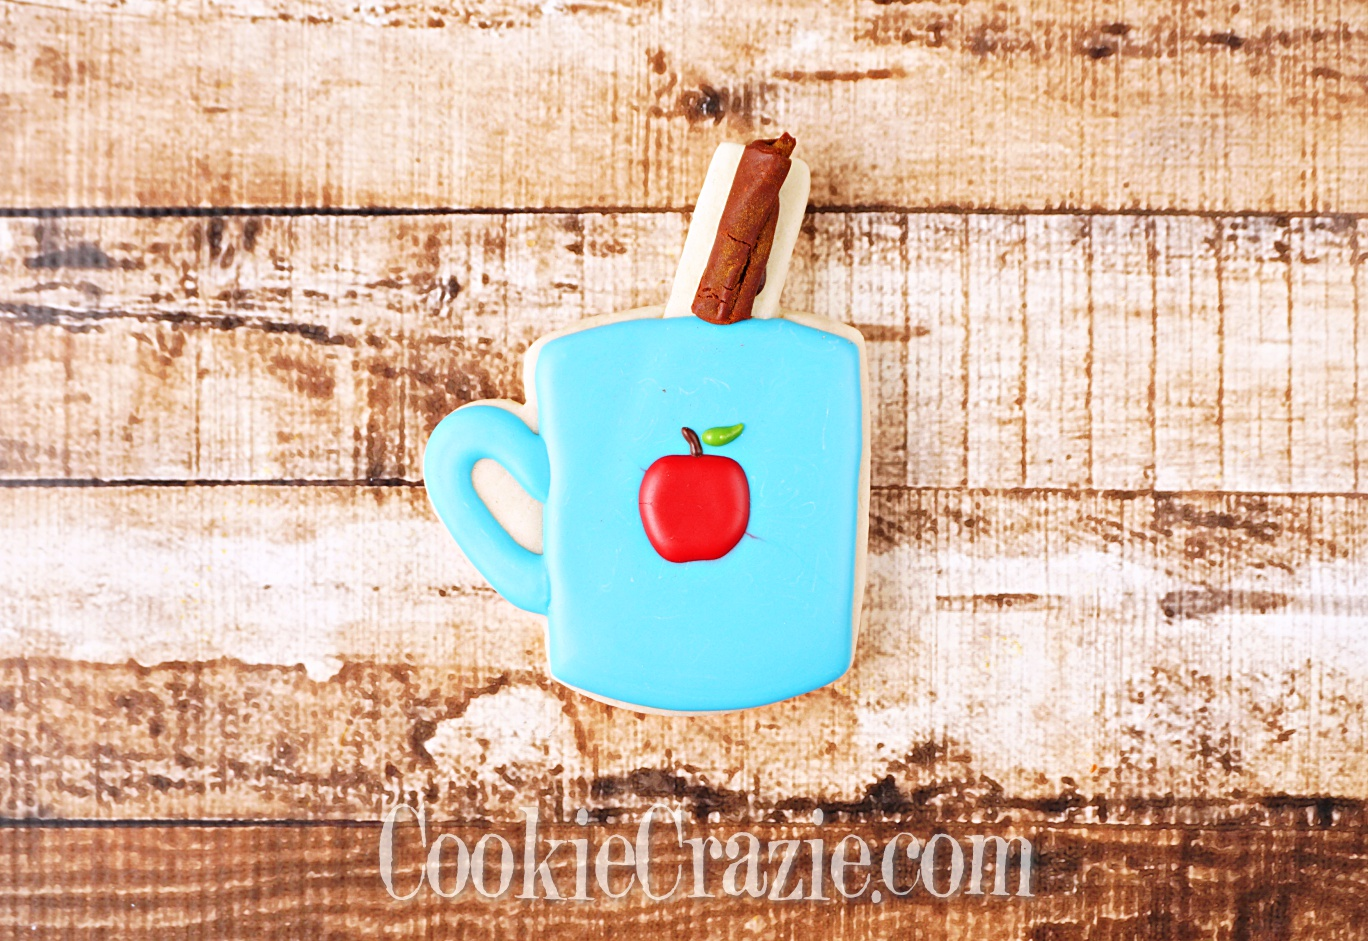 Apple Harvest Mug with Cinnamon Stick Decorated Sugar Cookie YouTube video  HERE